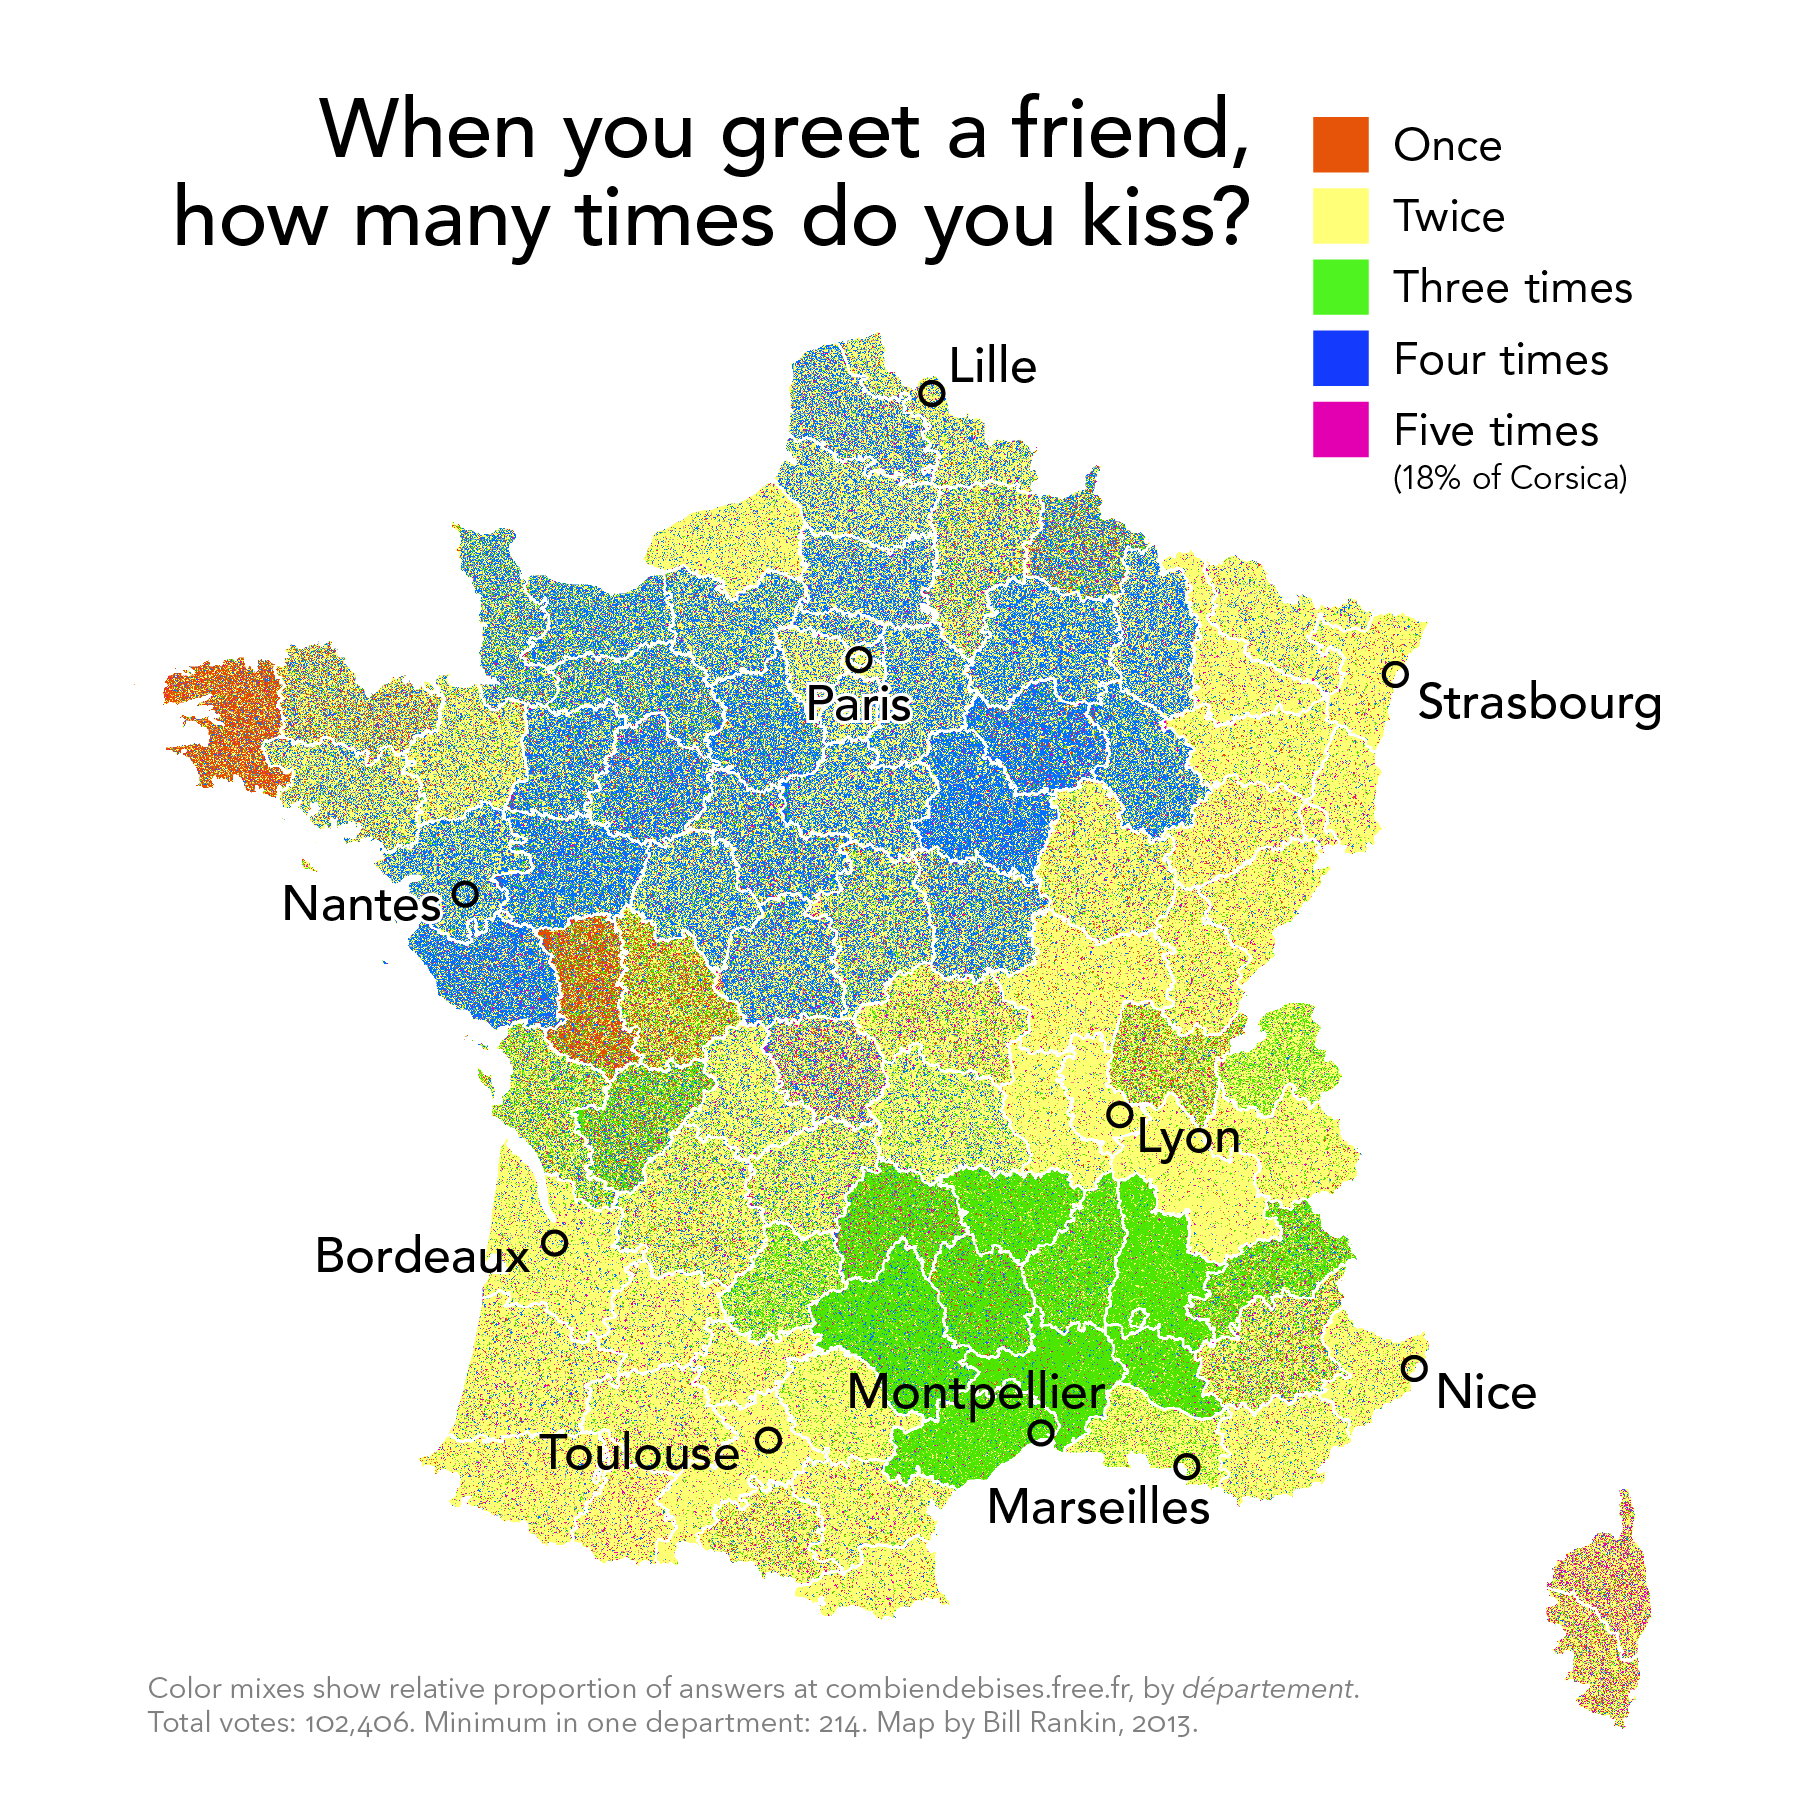 The propensity of cheekbased kisses in France mapped Vox